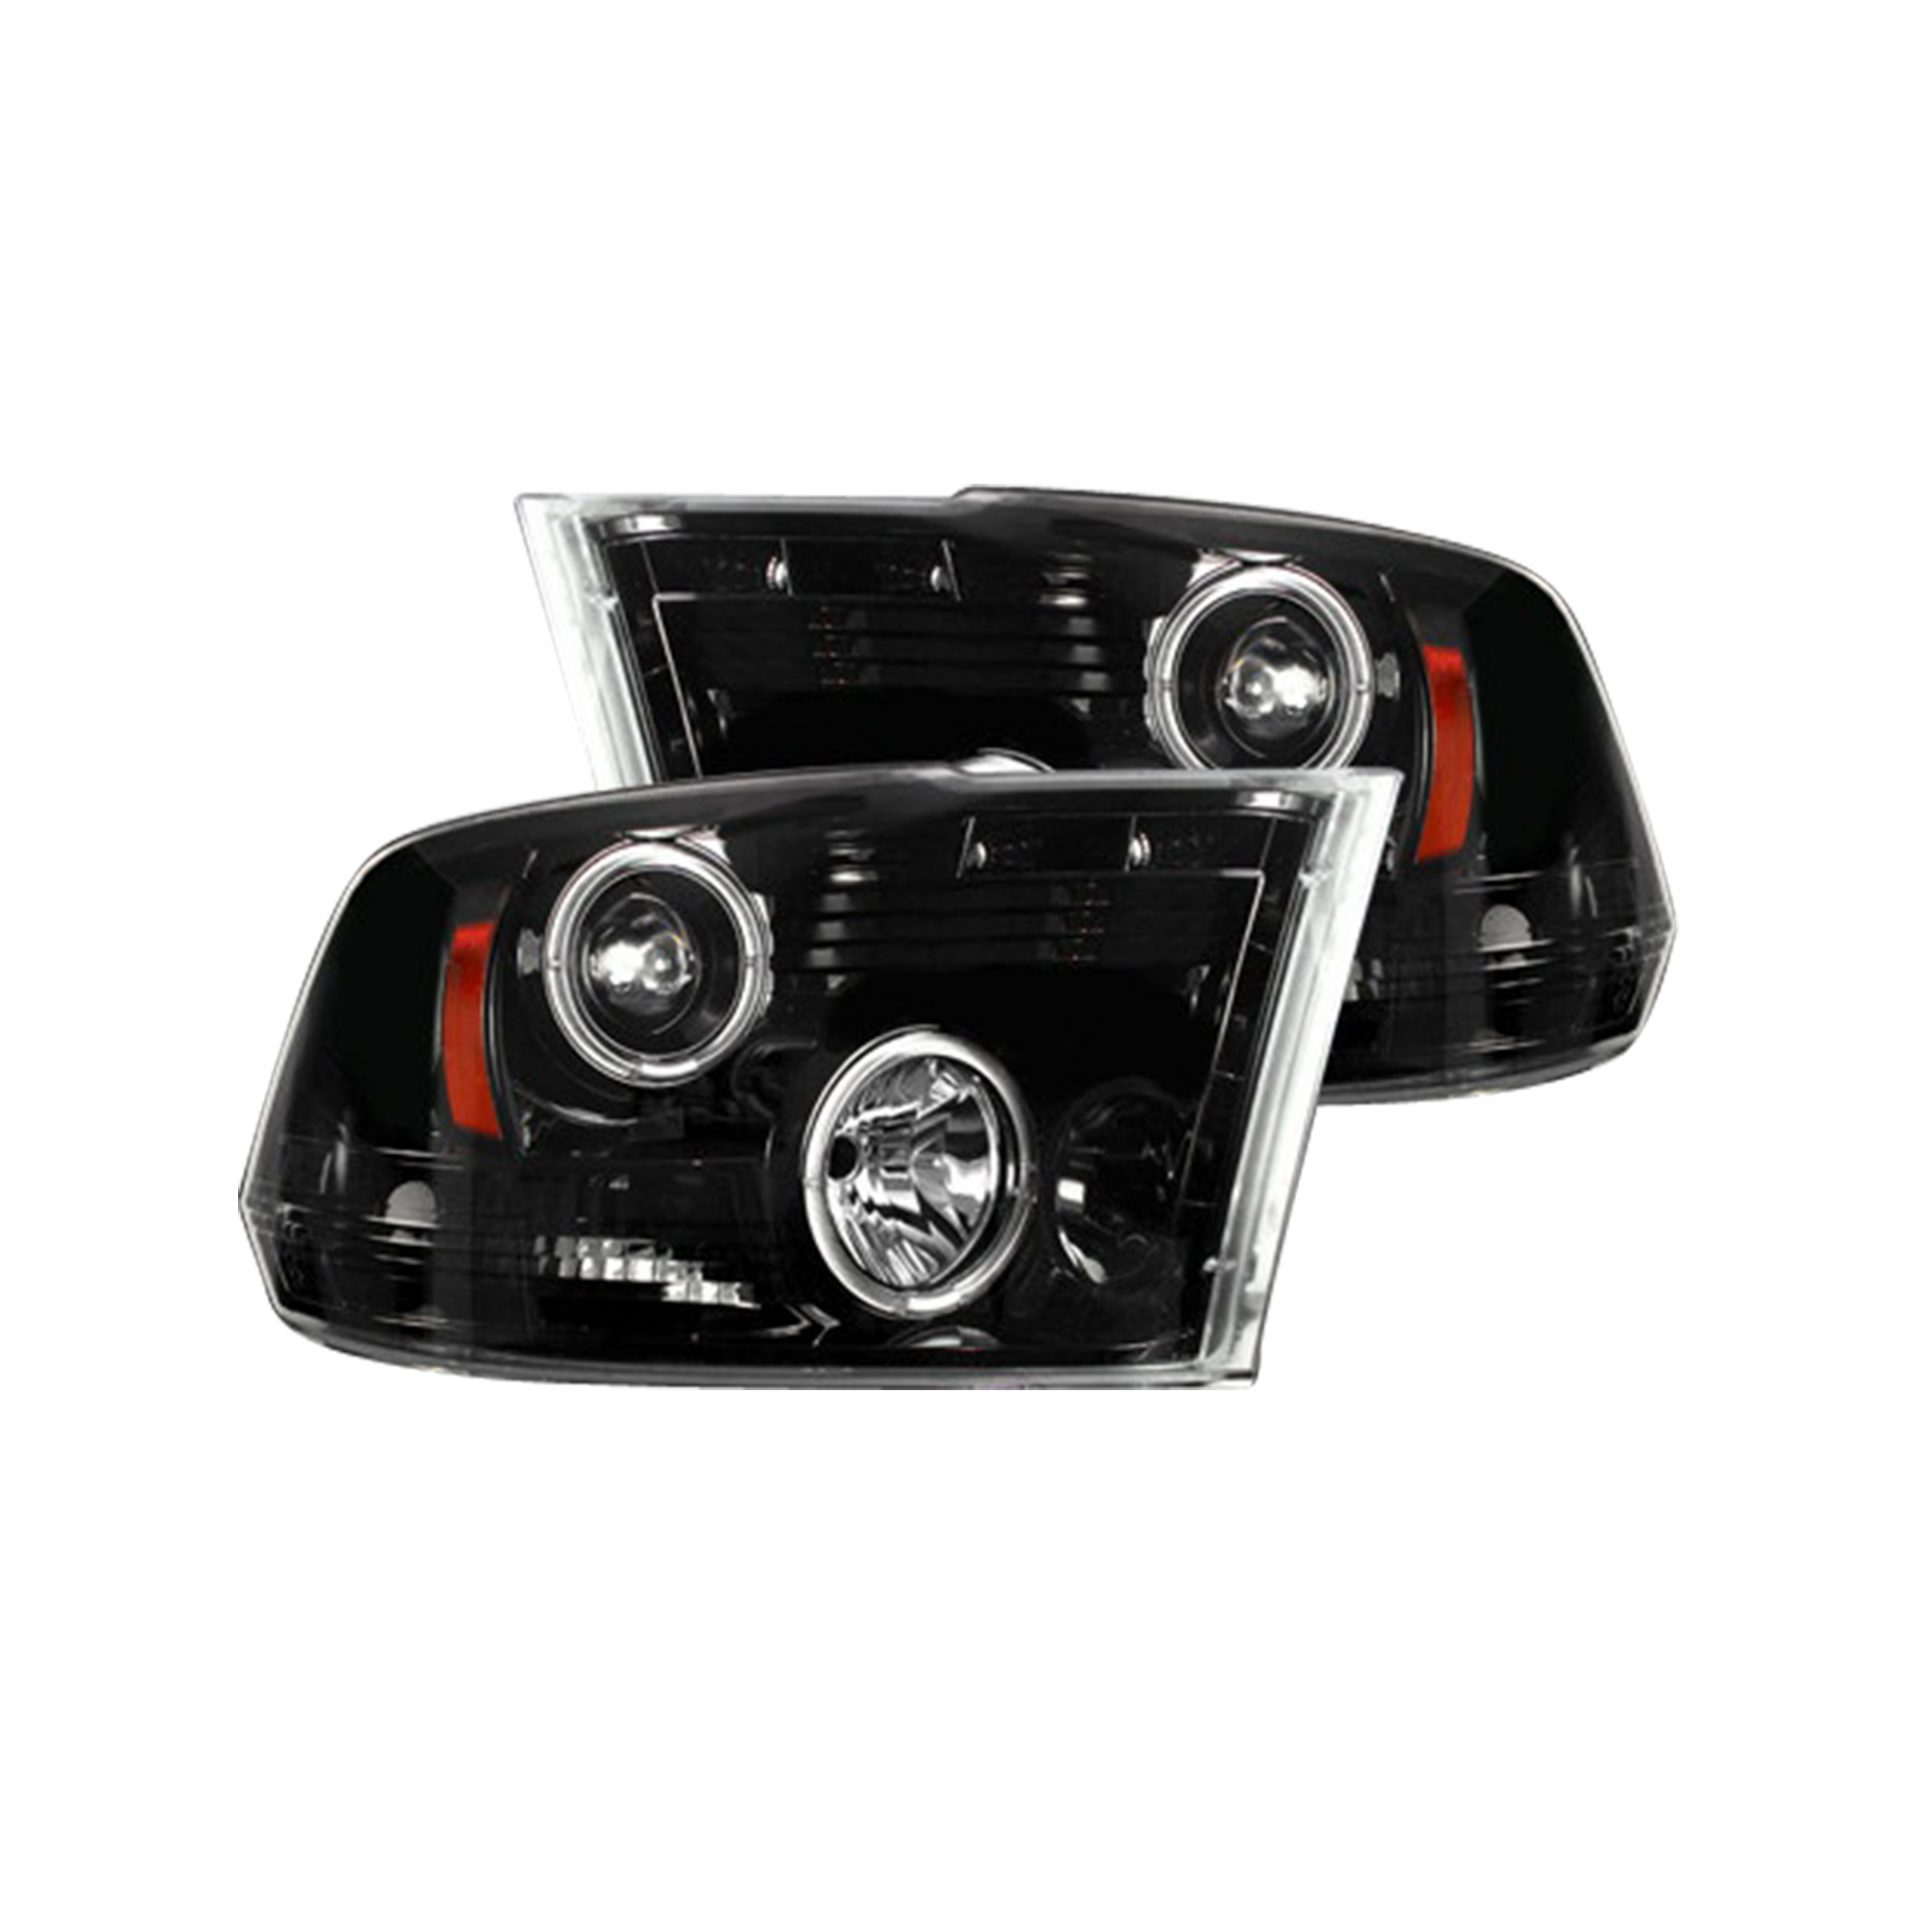 Smoked Black Truck Led Halo Headlights Dodge Ram 09 14 Recon Wiring Guide P U 264270bk